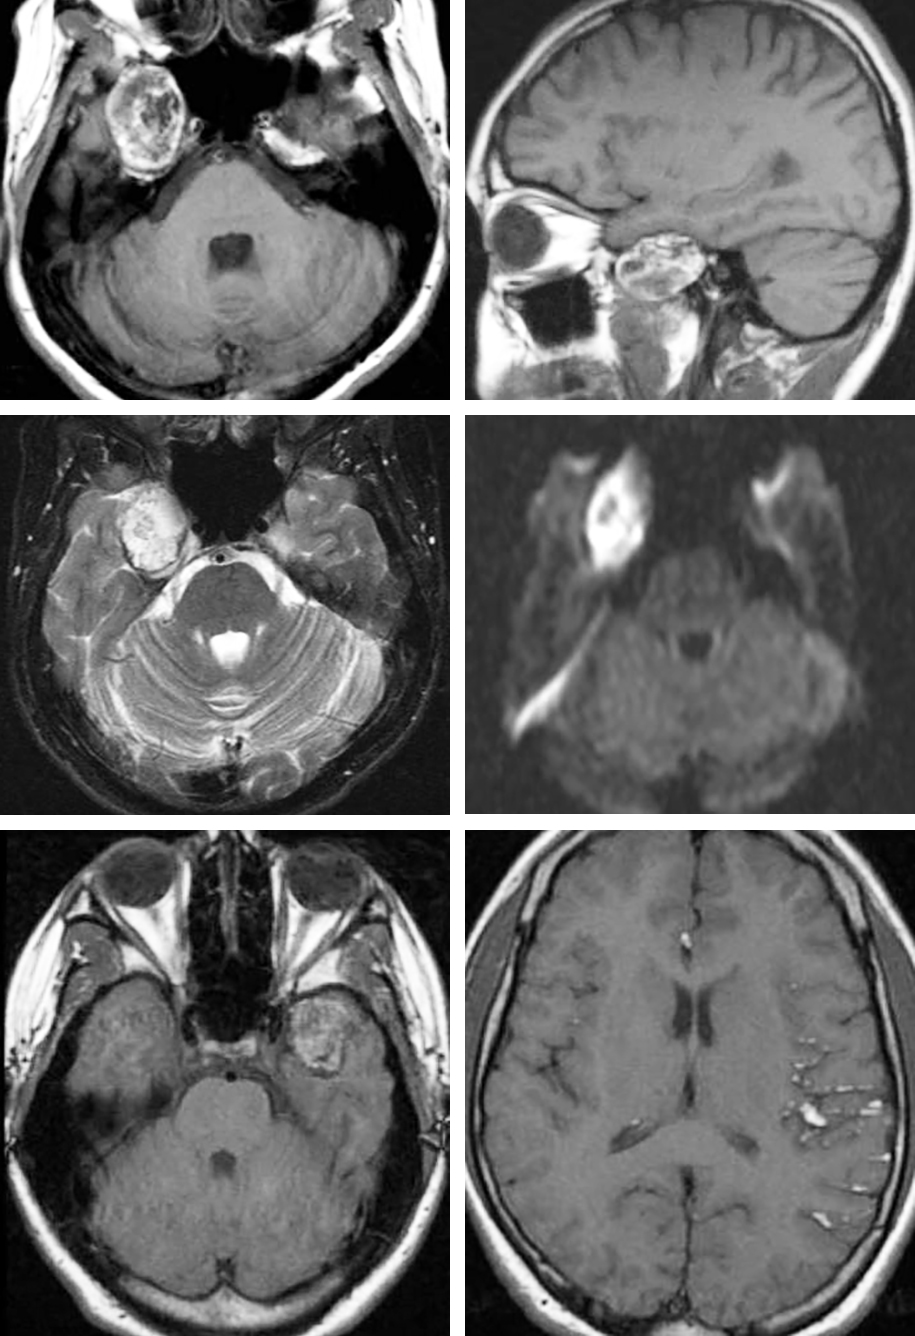 Figure 2: This right-sided temporal dermoid lesion demonstrates T1 hyperintensity (images in upper row) consistent with its fat content. The appearance of T2- and diffusion-weighted sequences are shown in the images of the middle row. Since the texture of dermoids is more solid than epidermoids, dermoids are less likely to grow around neurovascular structures and are more likely to cause focal mass effect. Some dermoid tumors may show nodular enhancement. The pattern of a left temporal dermoid rupture leading to disseminated subarachnoid and intraventricular fat droplets is shown in the images of the bottom row.